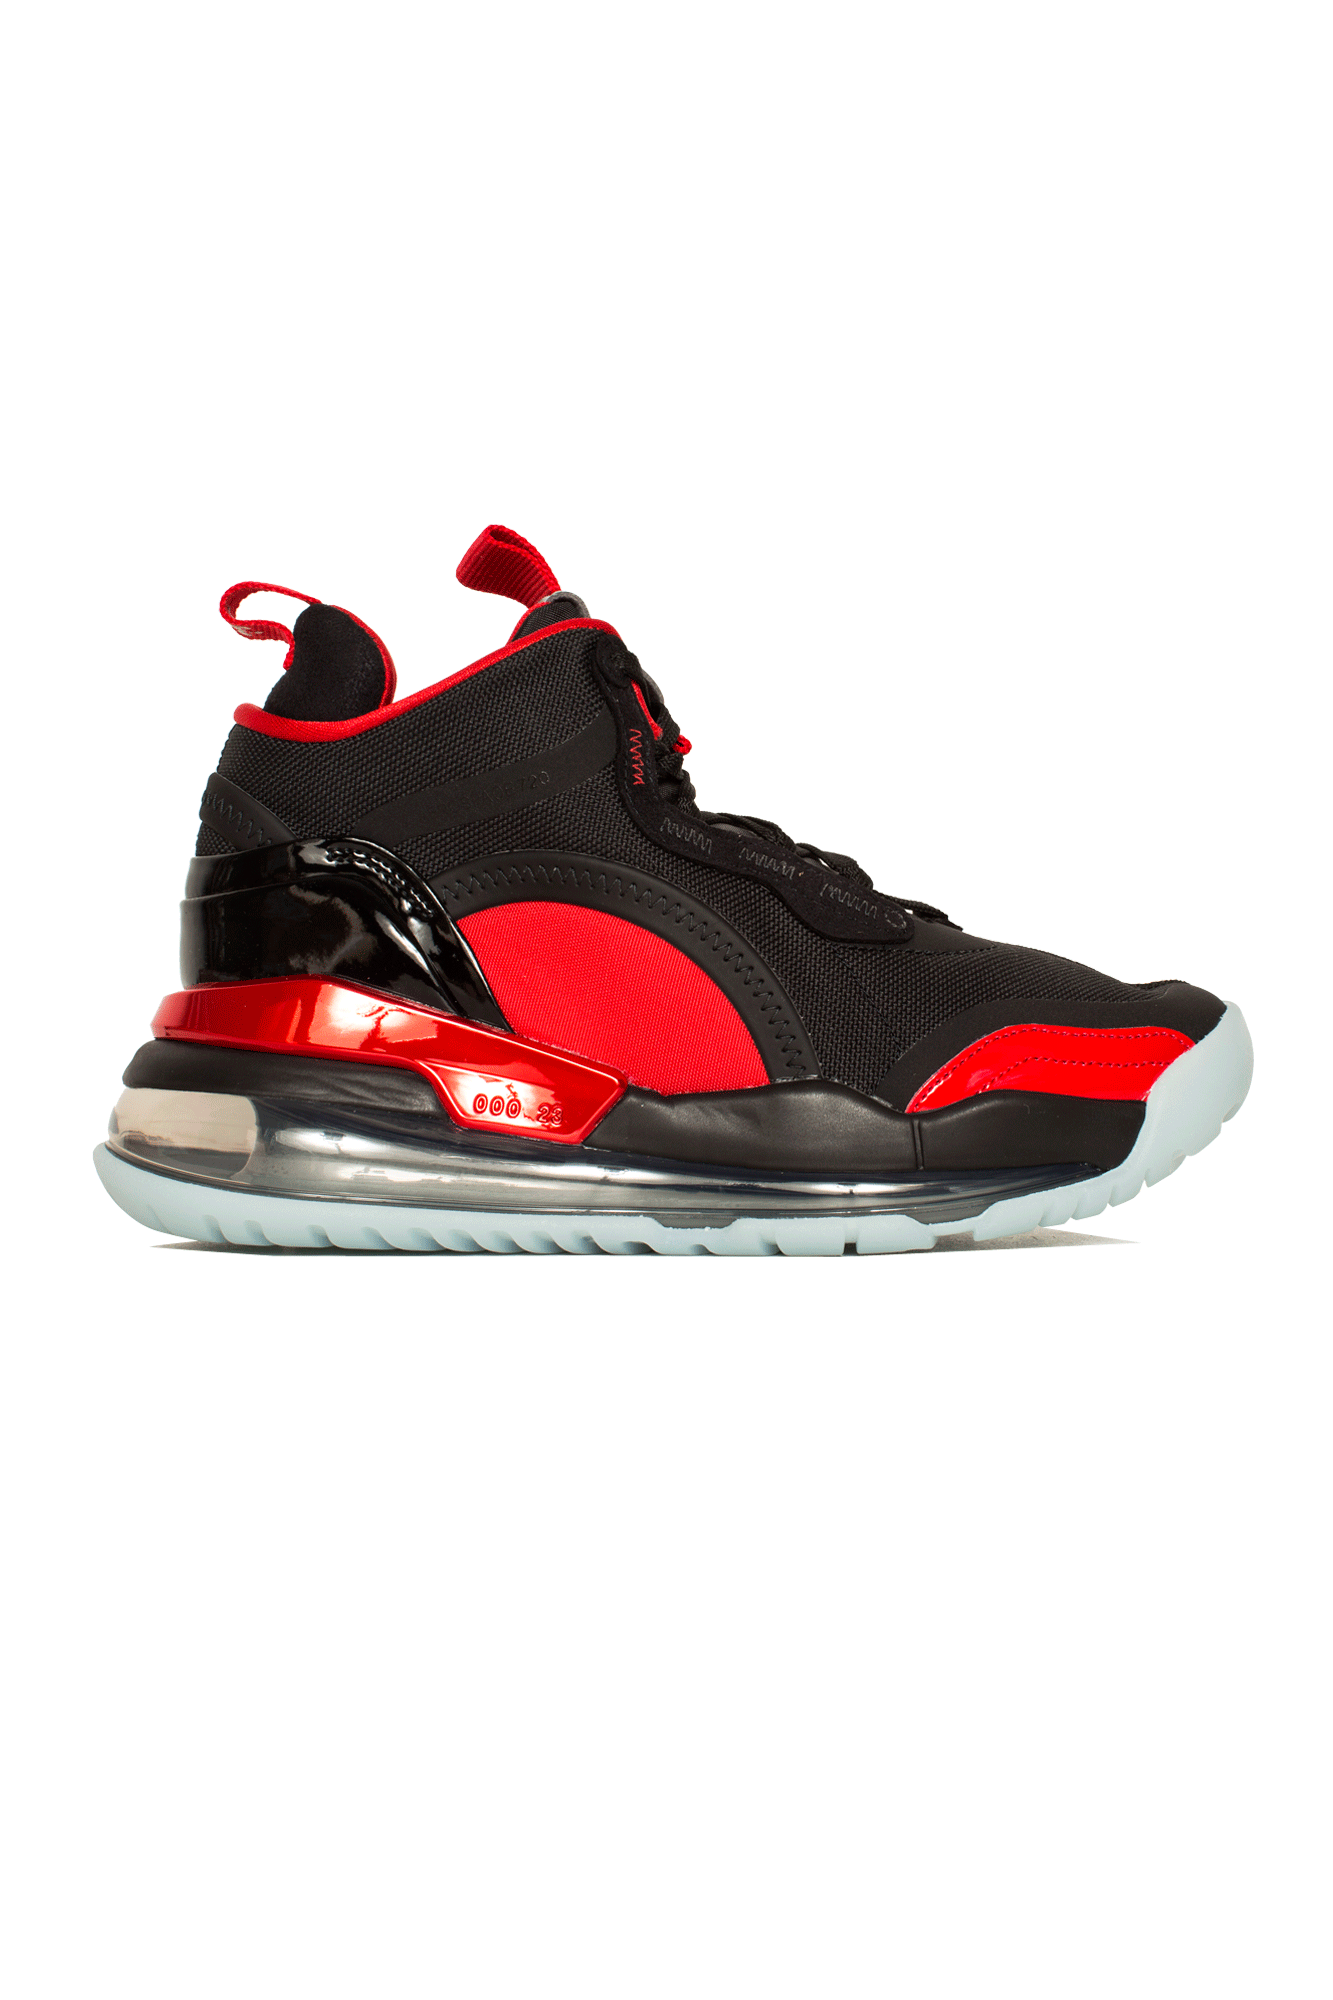 Jordan Aerospace 720 Paris Saint-Garmain Black